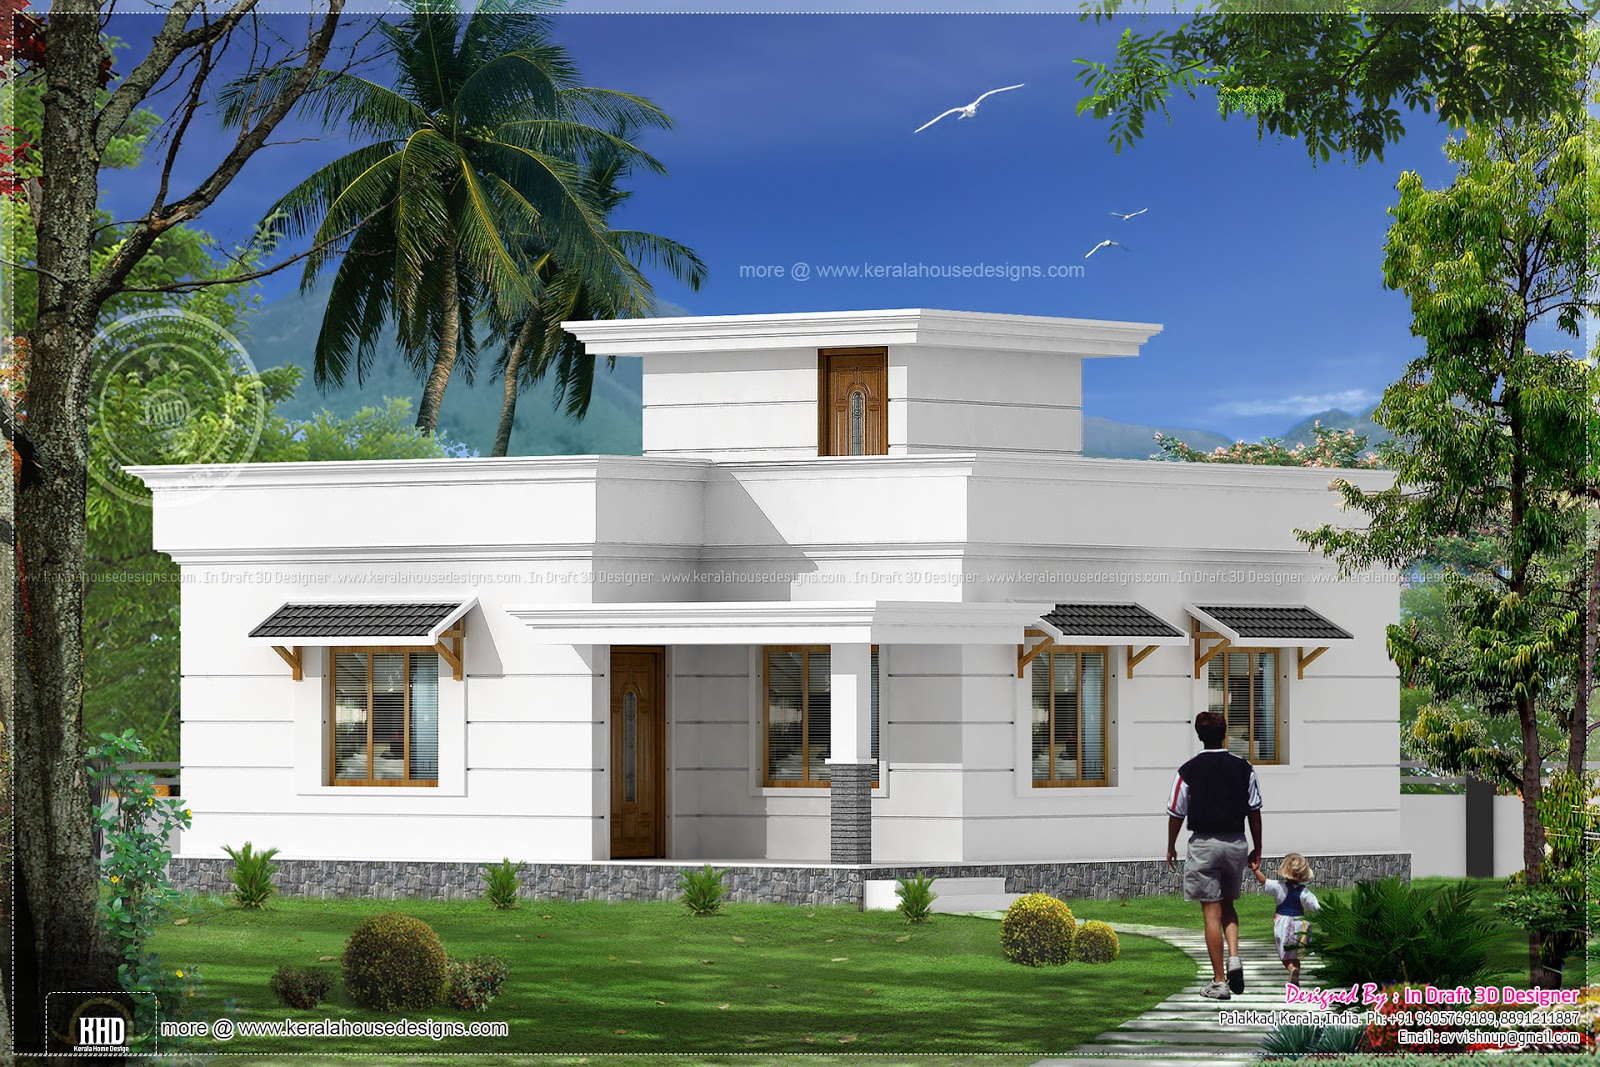 2 bed room kerala villa 1117 sq feet home kerala plans for Villa plans in kerala